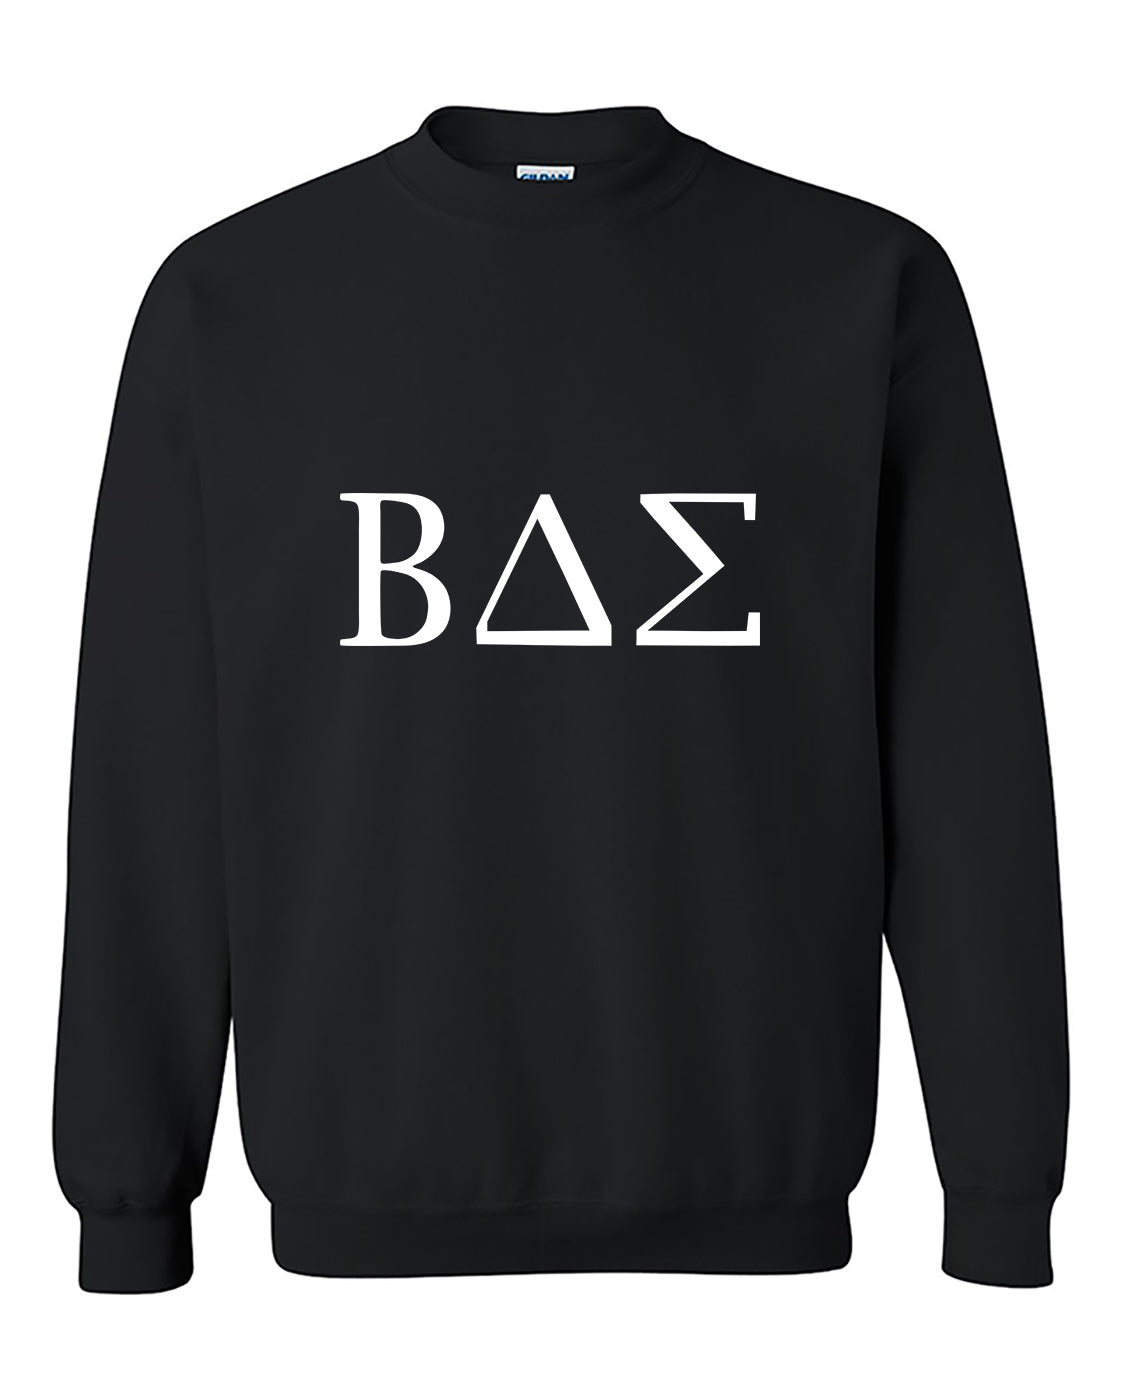 BAE Greek Letter Unisex Fasin Crewneck Sweater